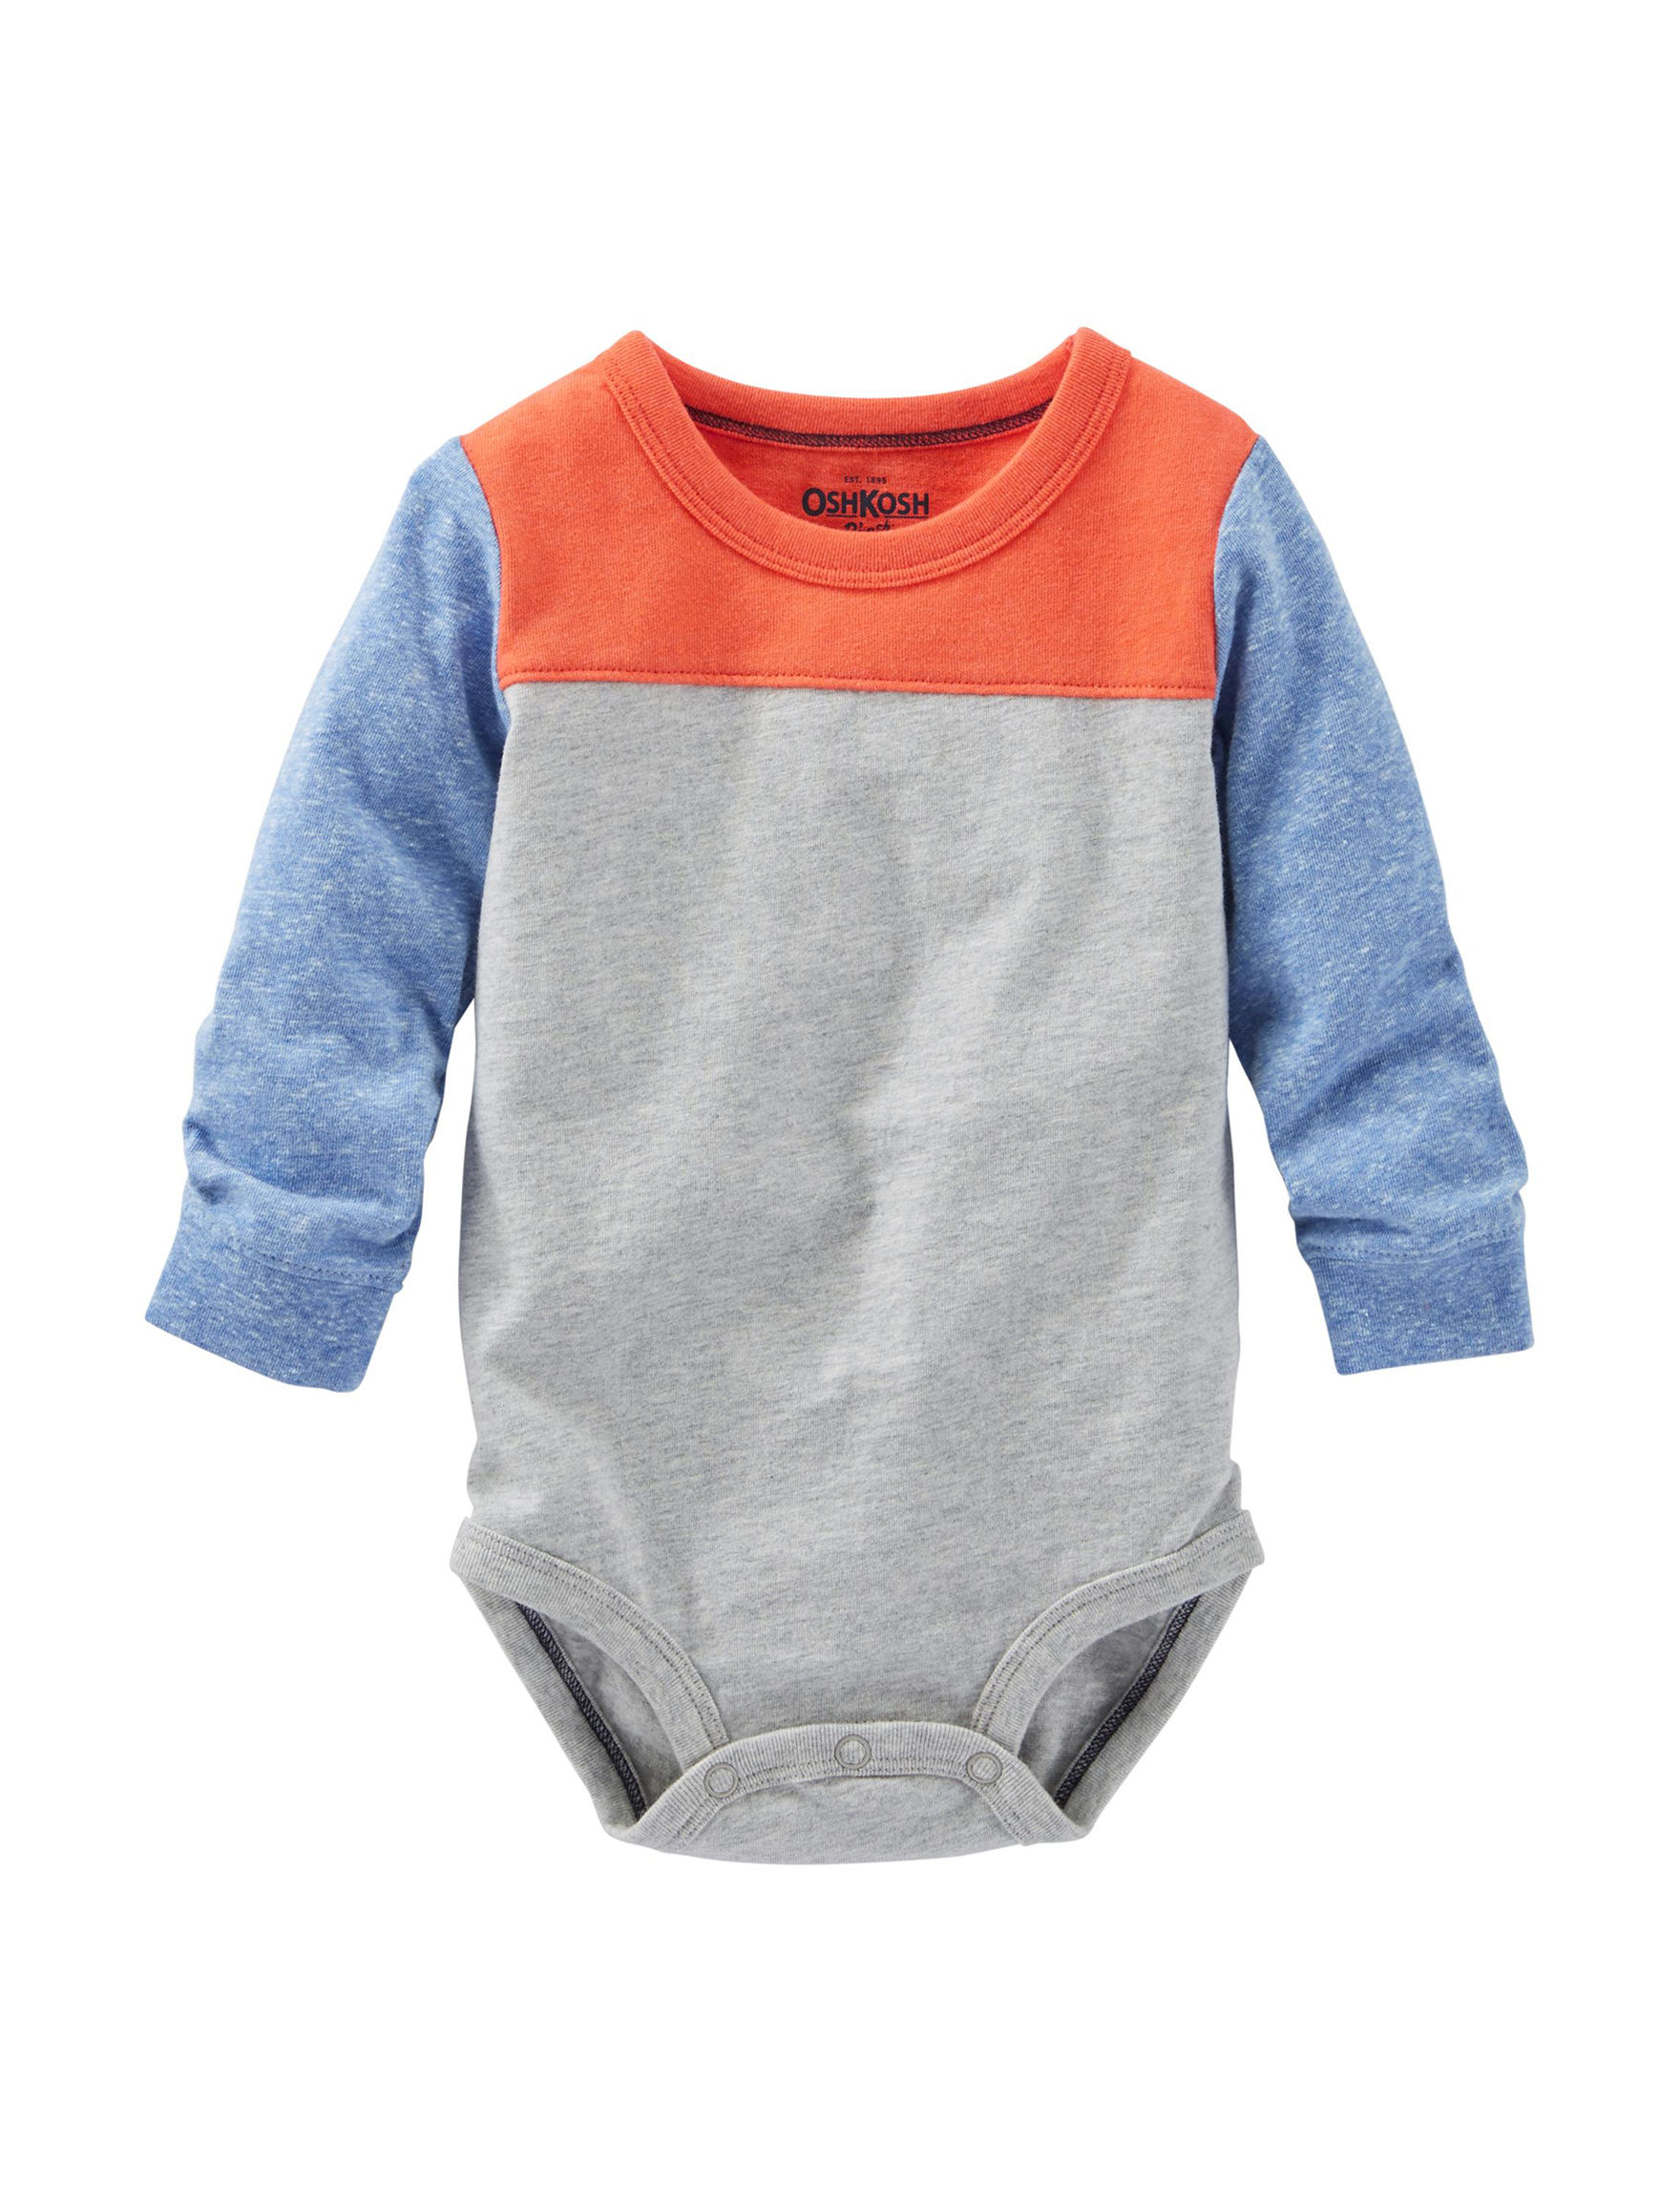 Oshkosh B'Gosh Grey